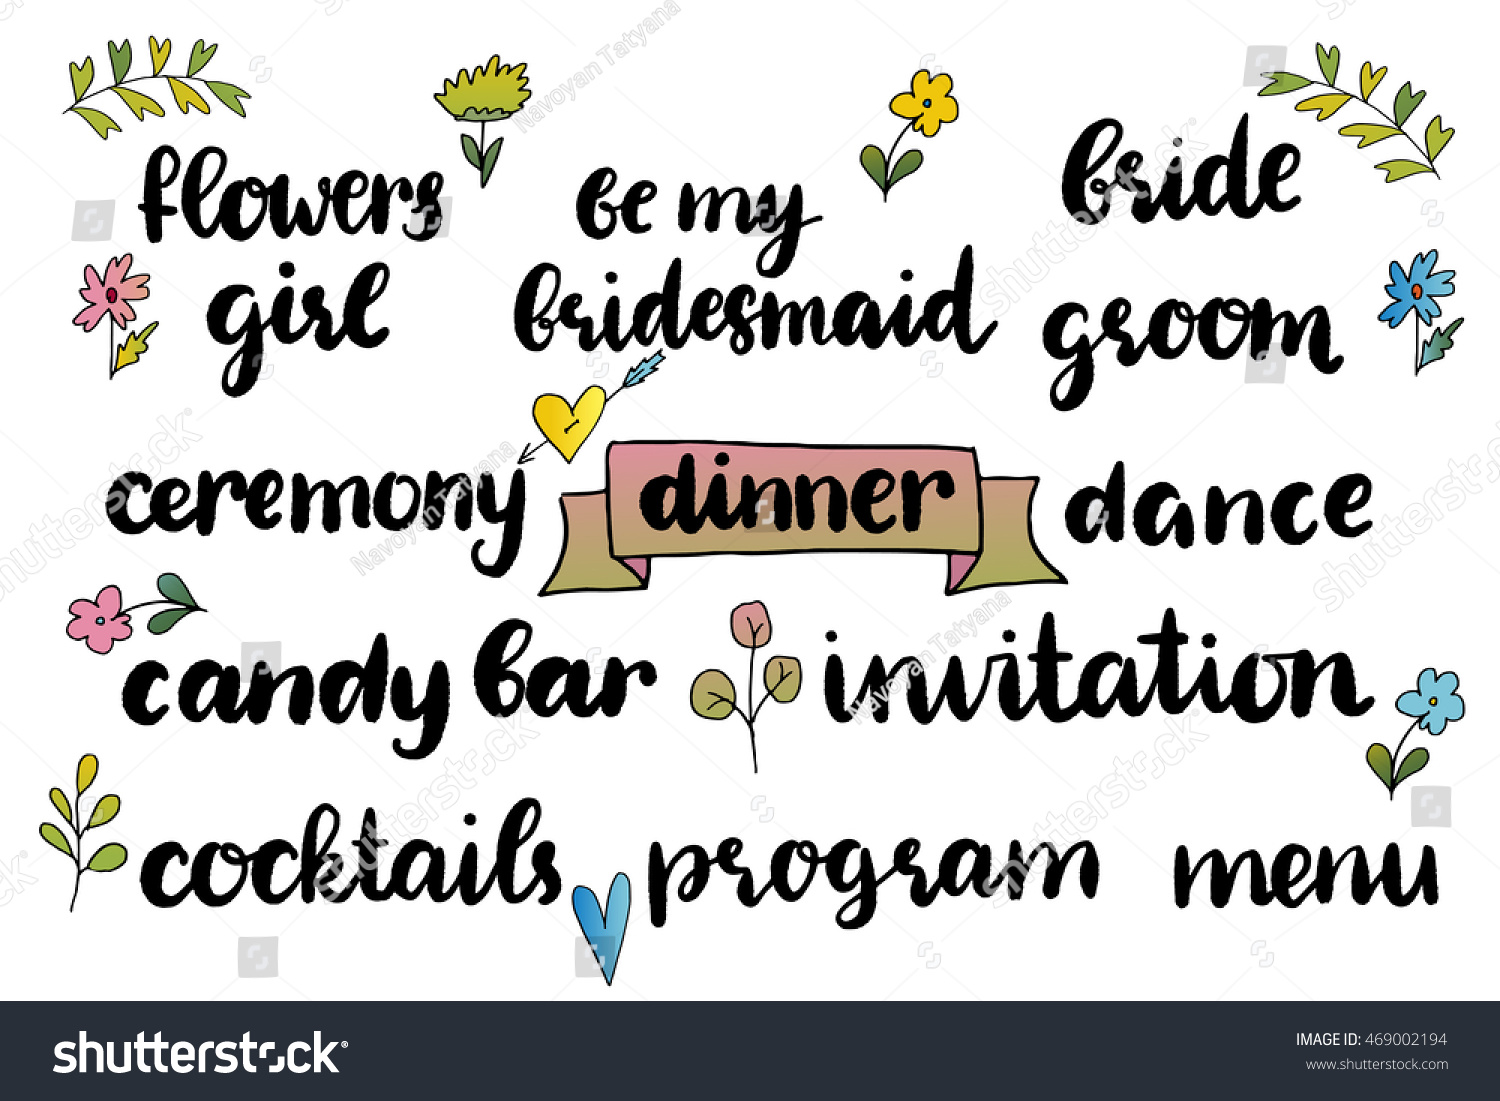 Templates labels wedding words hand drawn stock vector royalty free templates labels wedding words with hand drawn lettering invitation flowers girl filmwisefo